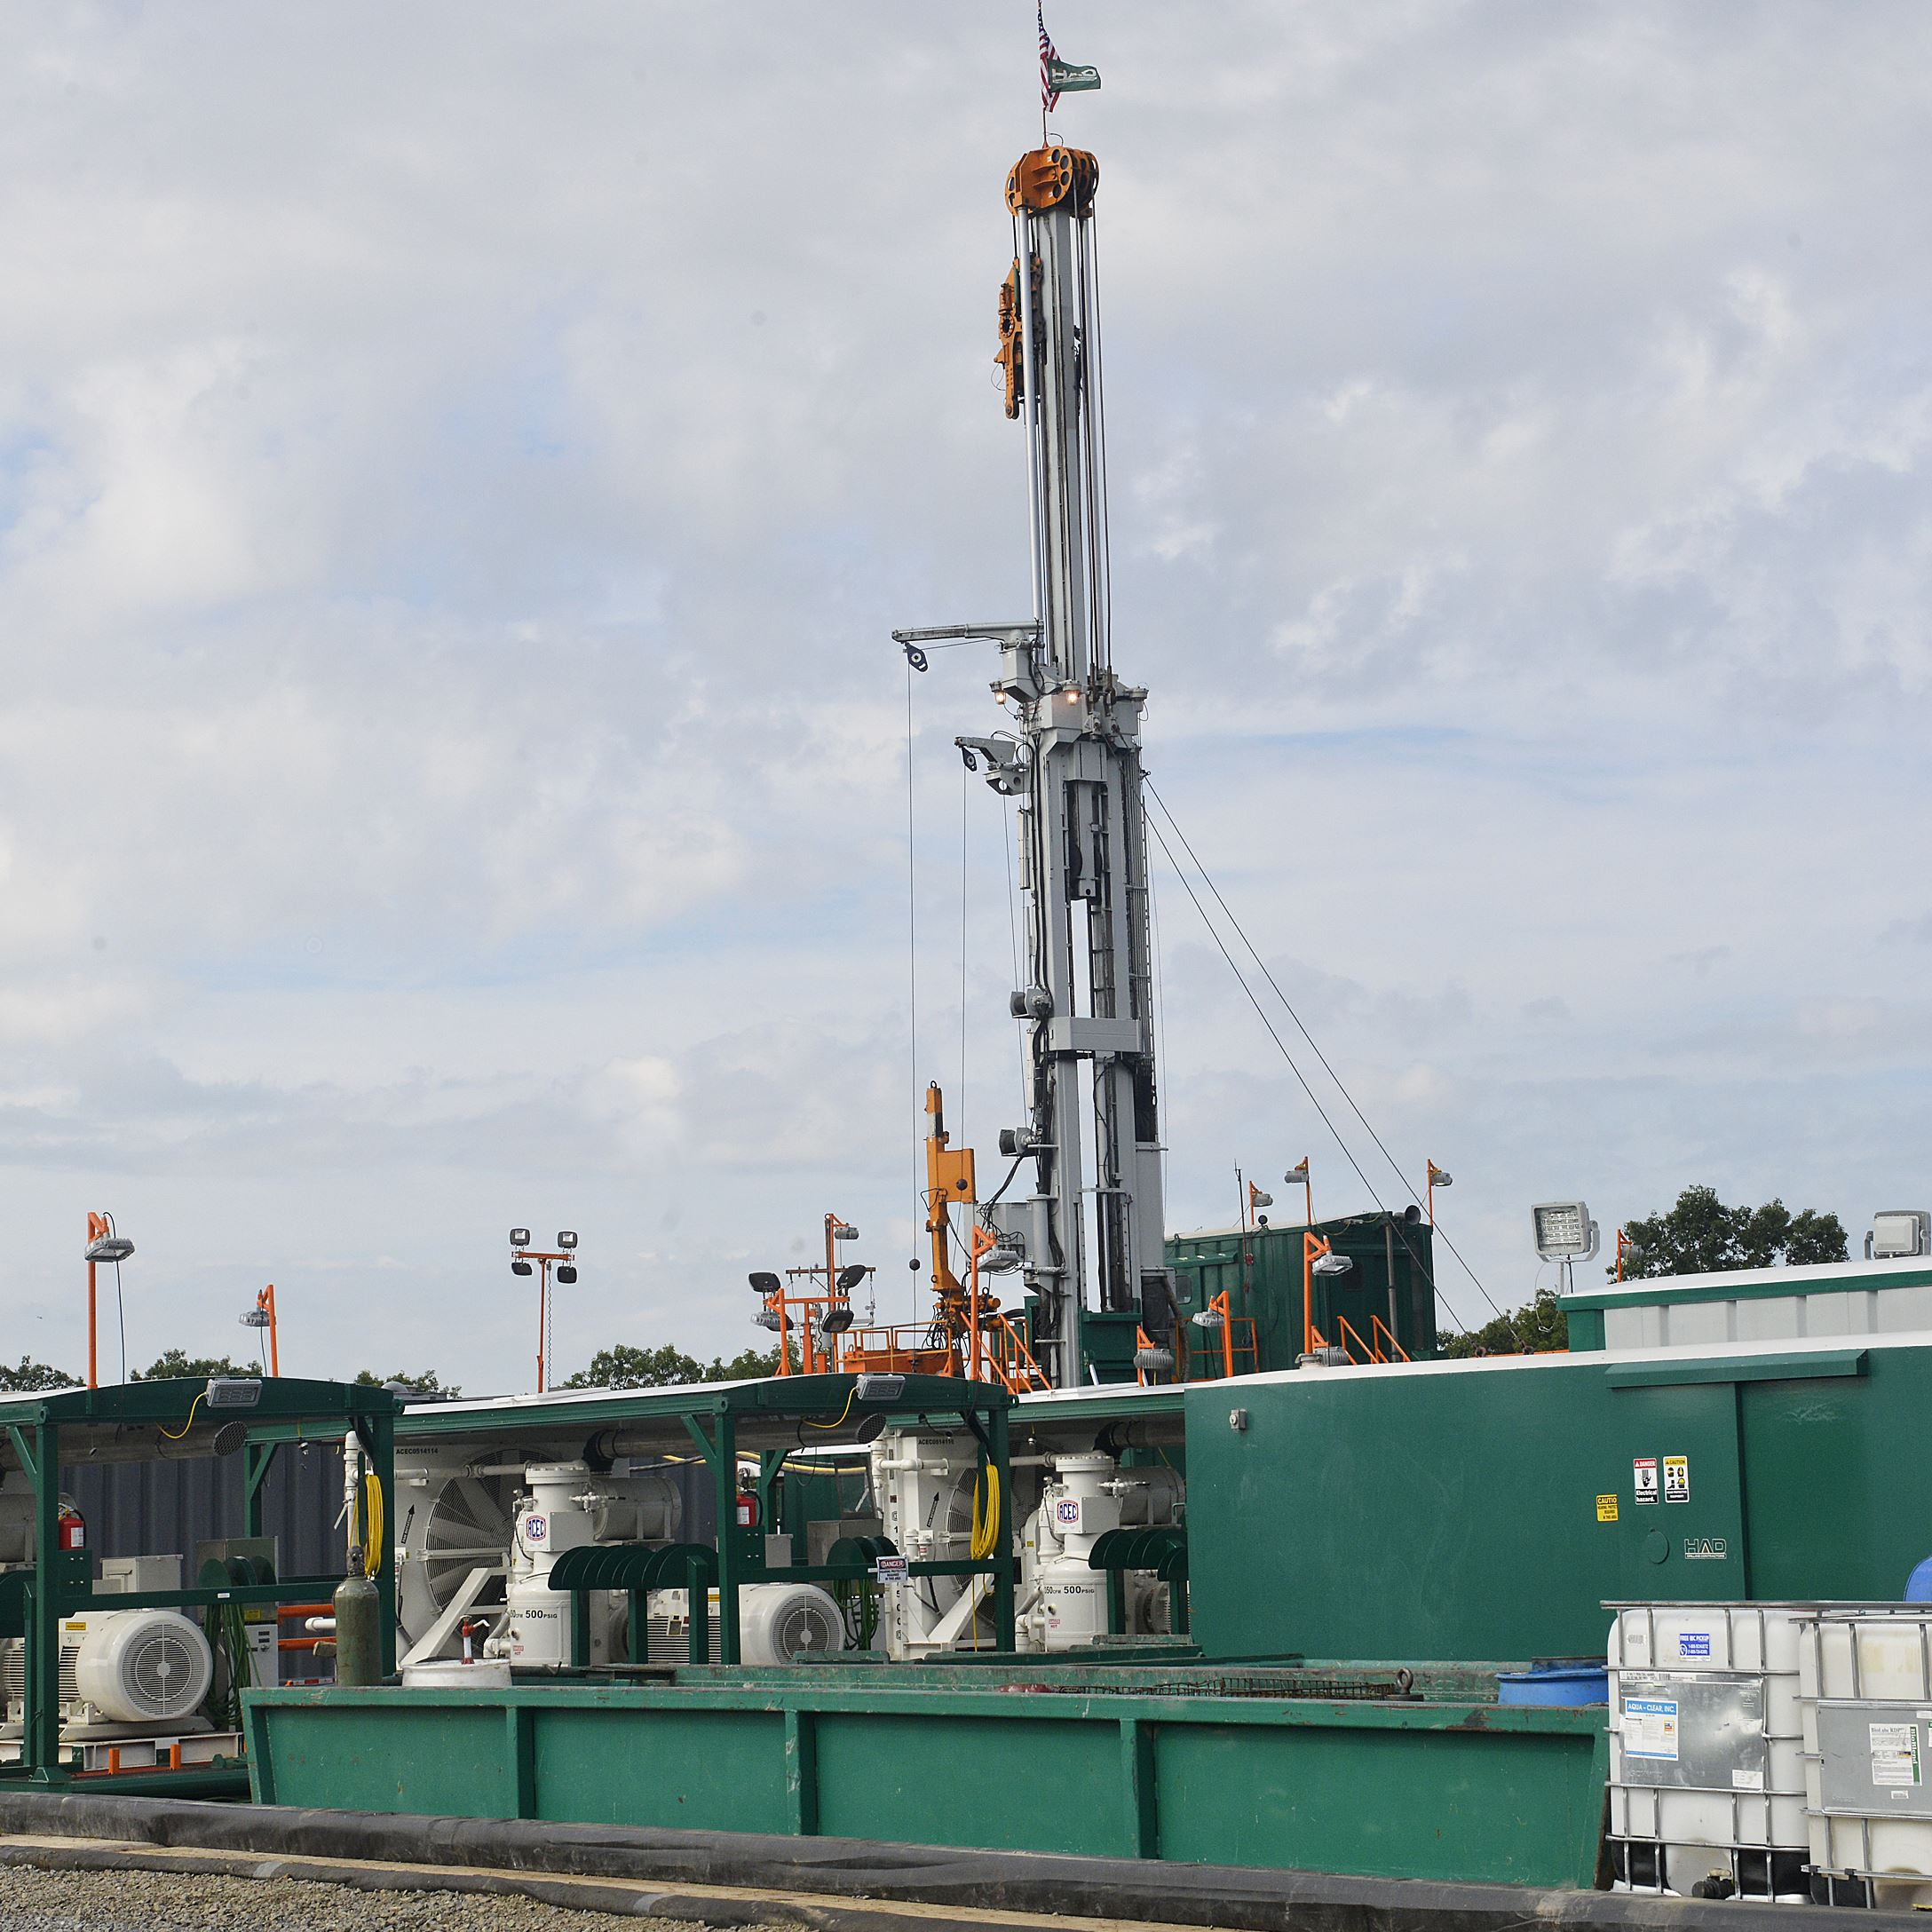 Consol Energy Well Pad 2 The first well on Consol Energy's Well Pad 2 at the new Marcellus Shale extraction site near Pittsburgh International Airport.